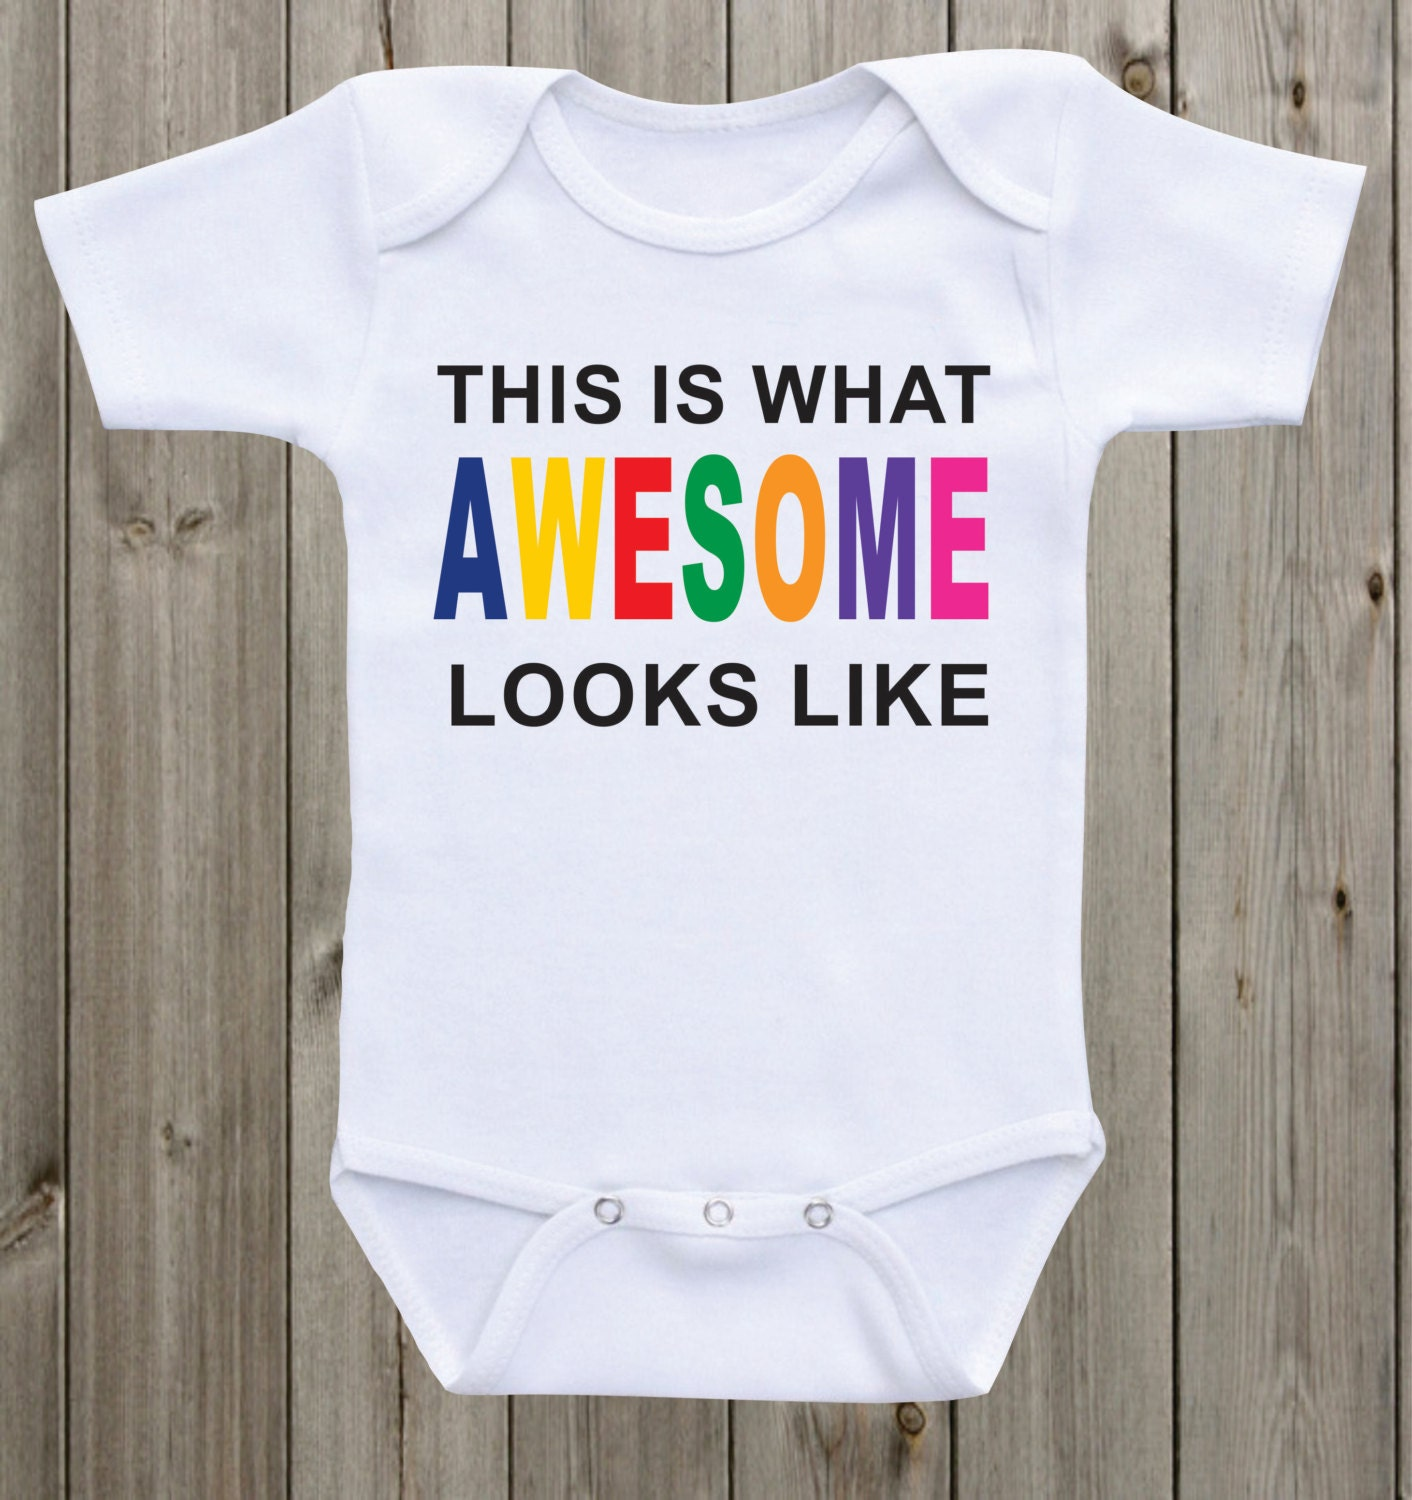 55bf3180c34d Awesome Baby Onesie Awesome Shirt Funny Baby Saying Newborn